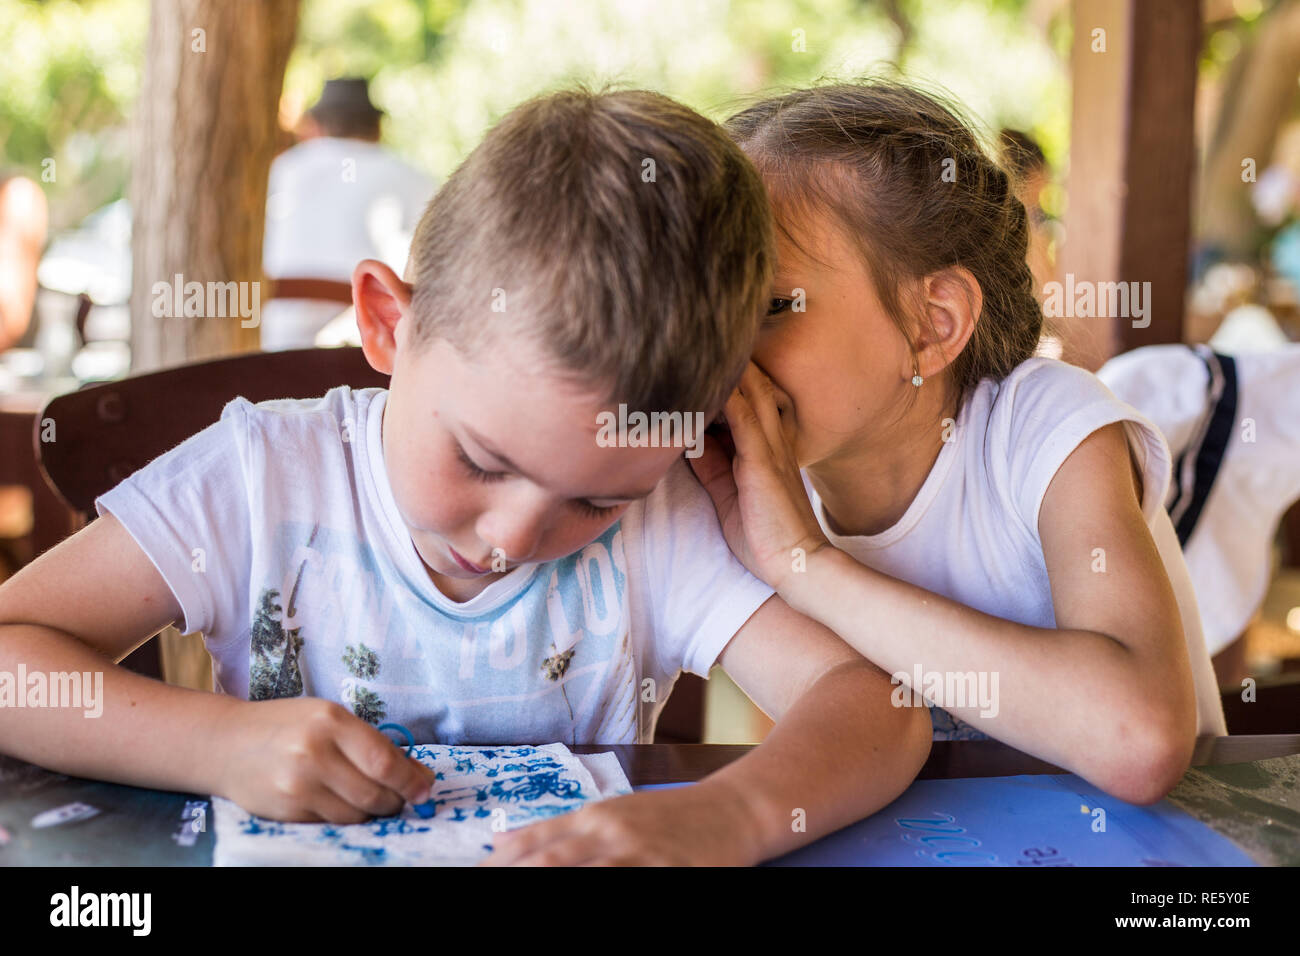 A little boy are whispering something to a pretty girl in a street restaurant. Children's friendship. Stock Photo